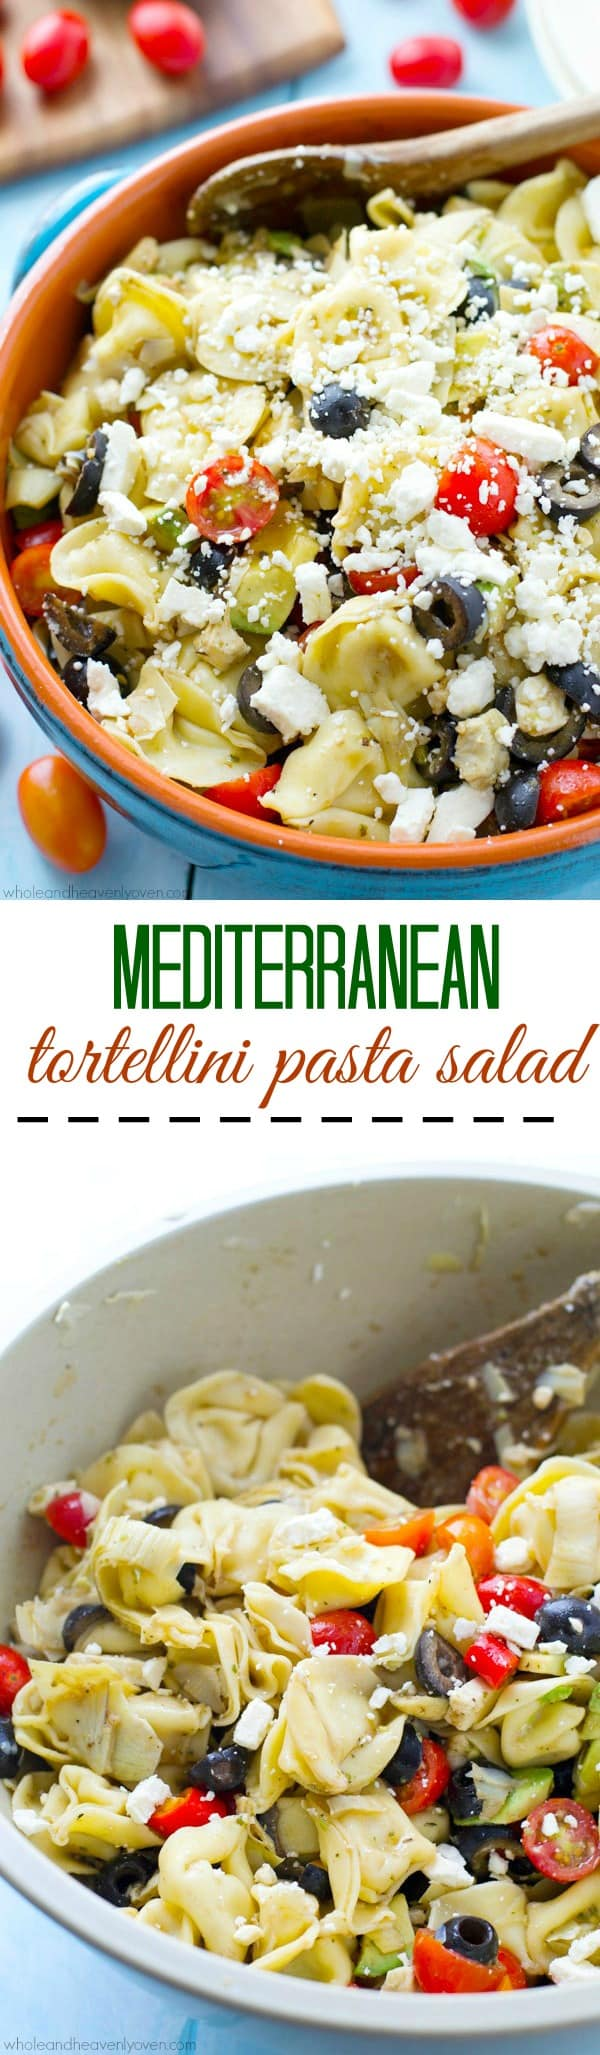 Bring this super-fresh tortellini salad to any picnic and watch it disappear! Loaded with a rainbow of Mediterranean ingredients and tossed in a tangy citrus balsamic dressing. @WholeHeavenly